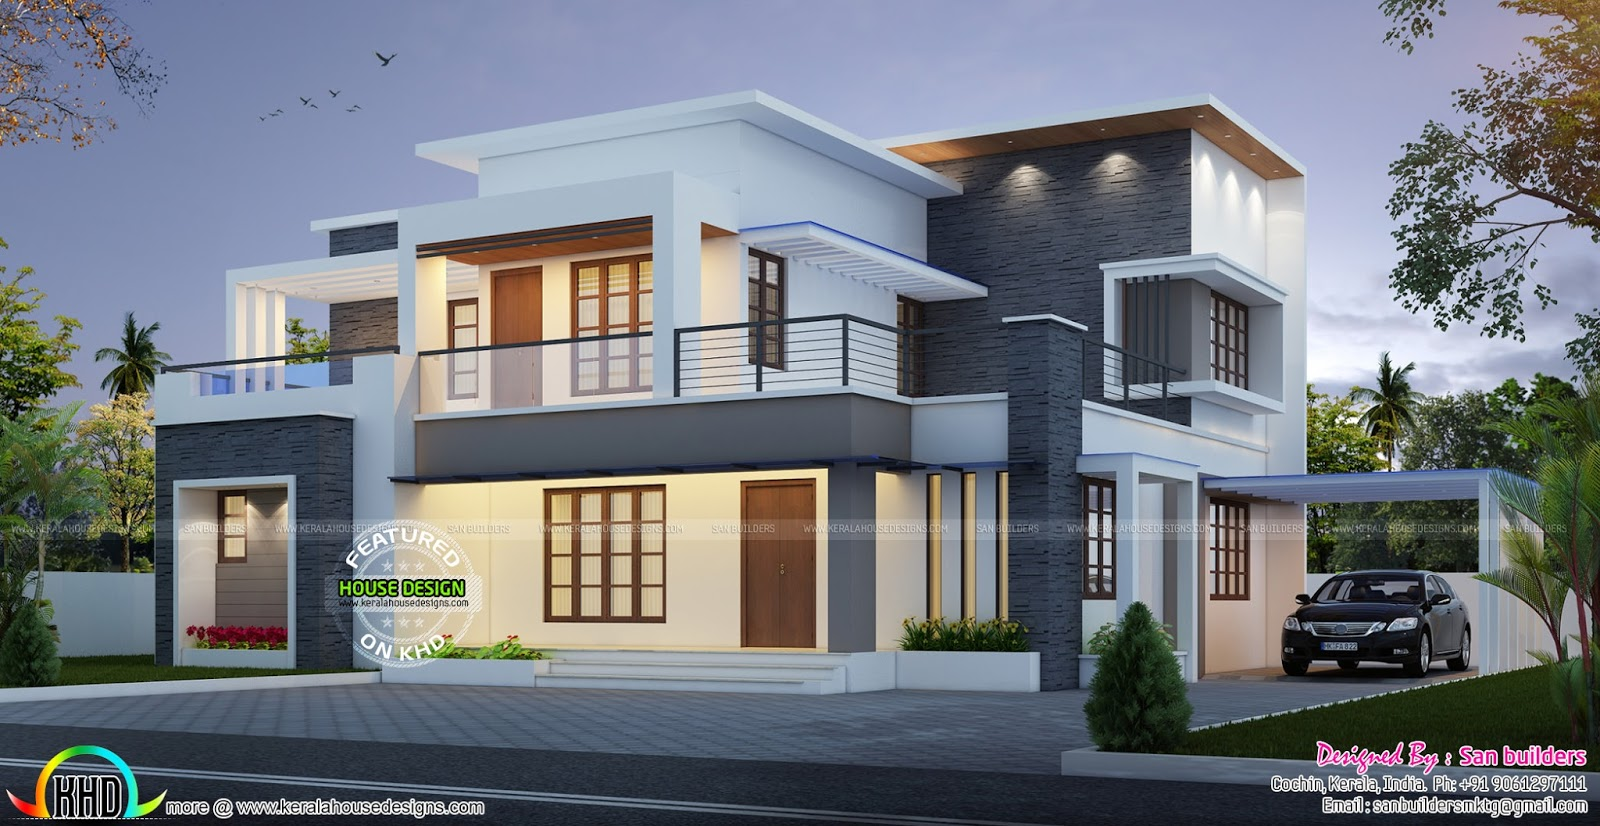 House plan and elevation by san builders kerala home for Contemporary model homes